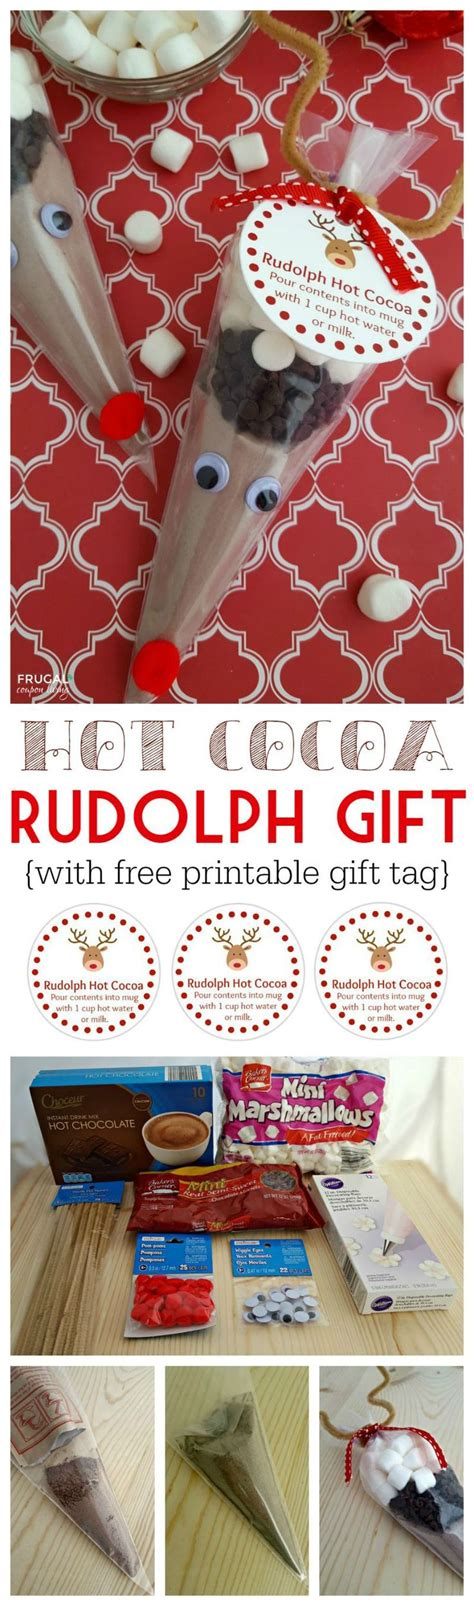 printable rudolph gift tags rudolph hot cocoa free printable gift tag opskrift